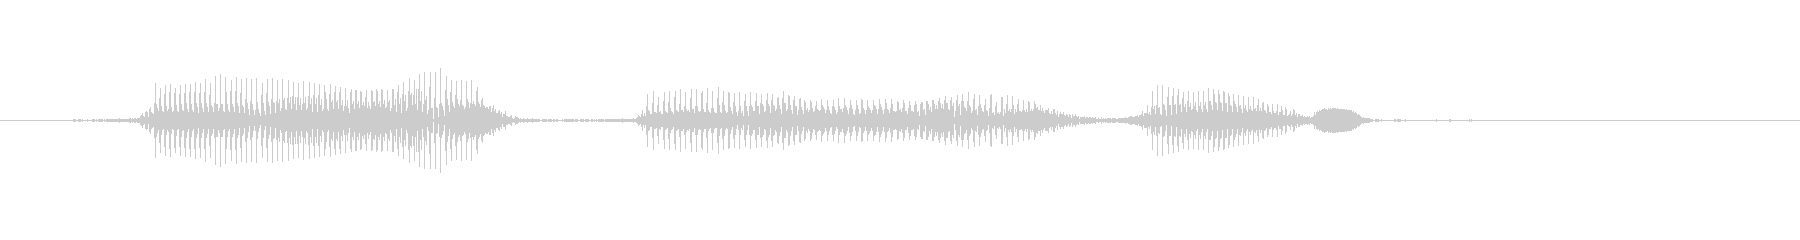 Baby laughter's unreproduced waveform